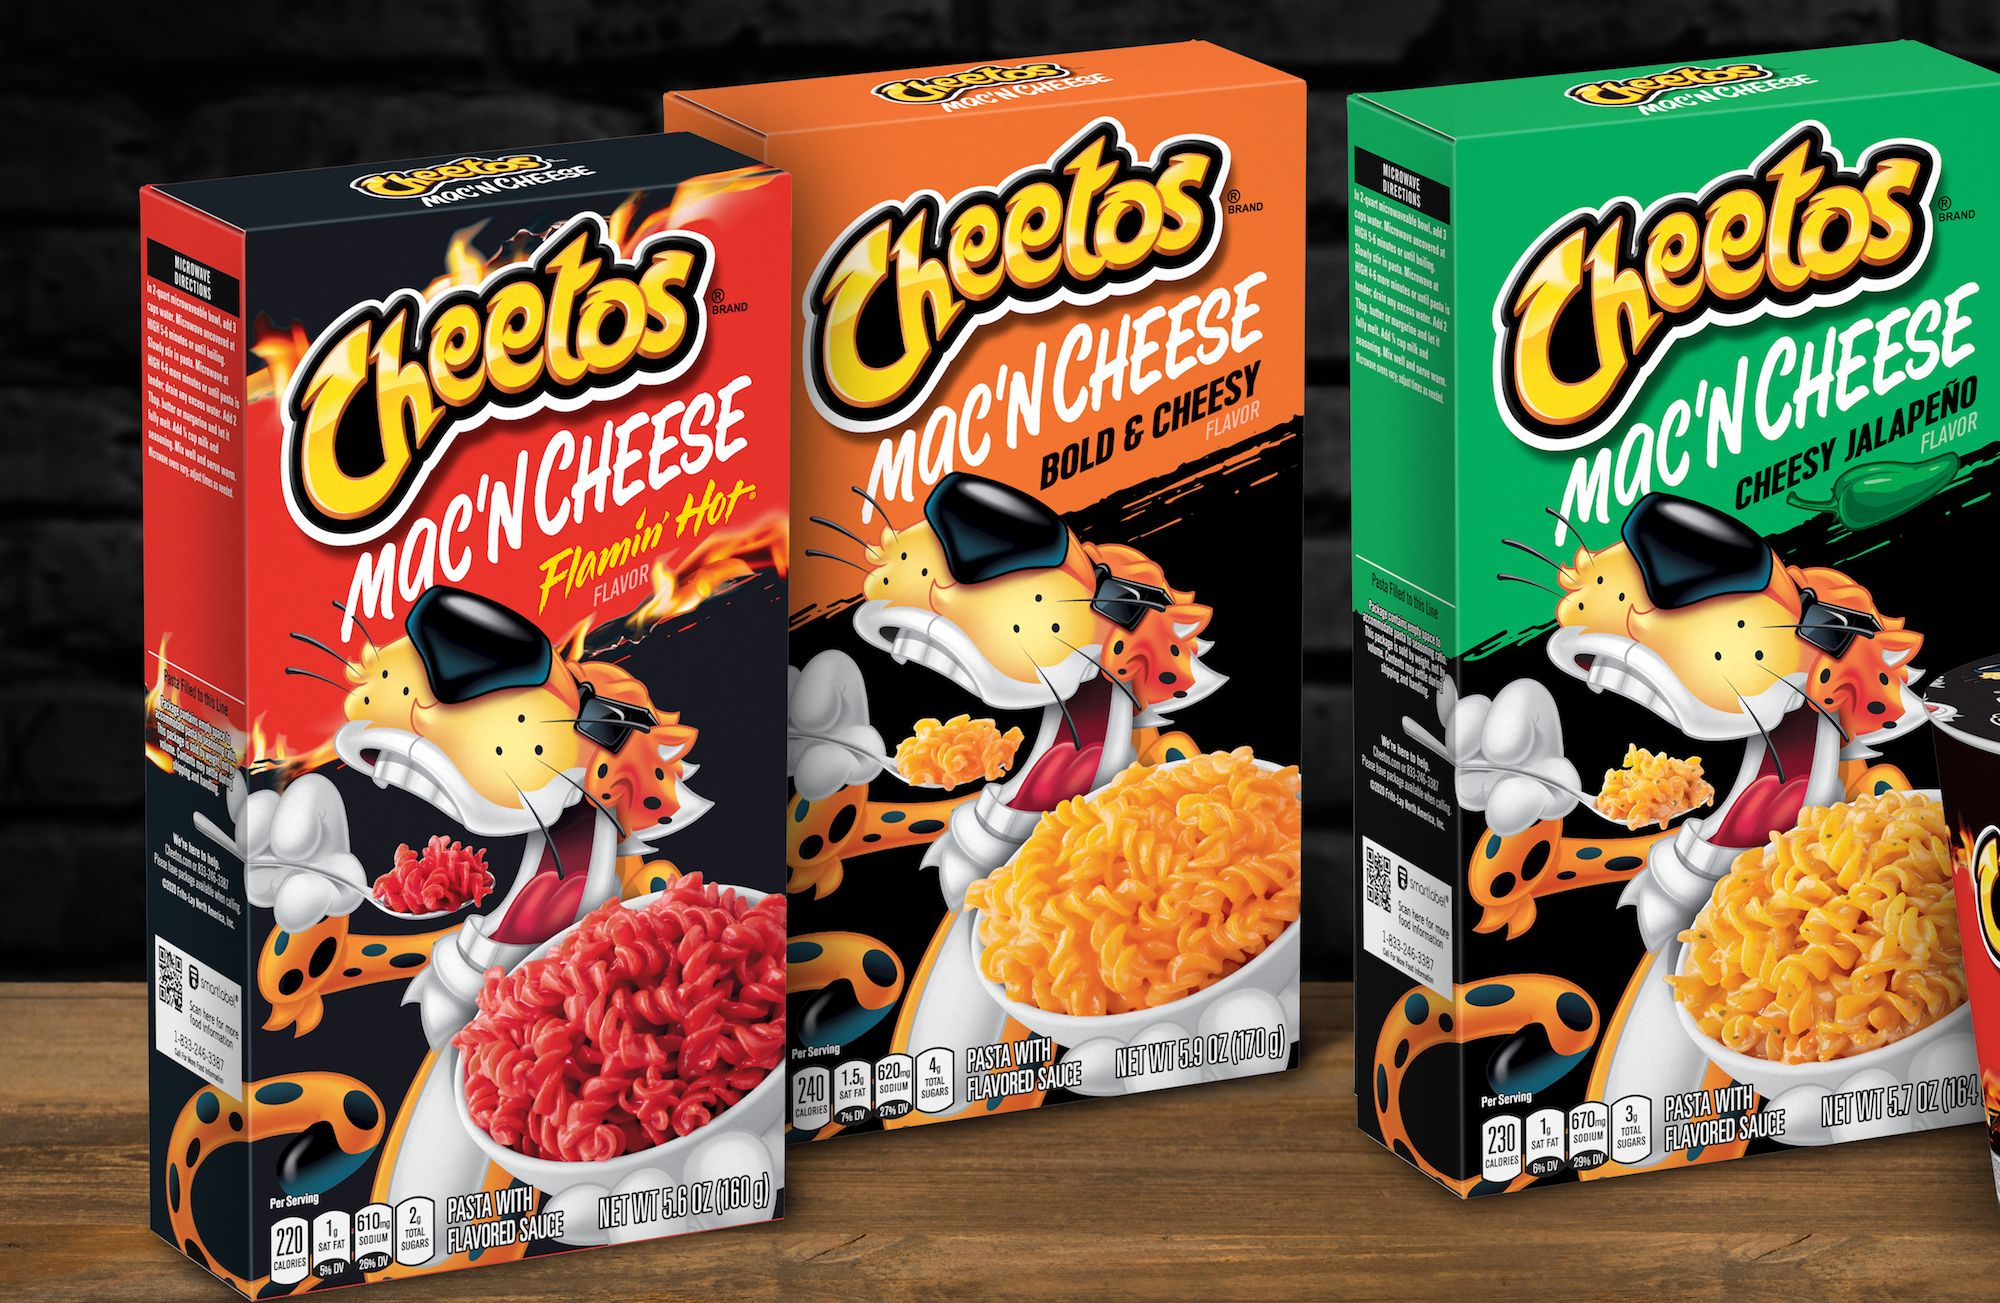 Cheetos Mac & Cheese Is Coming to Stores and We Could Not Be More Pumped to Try it